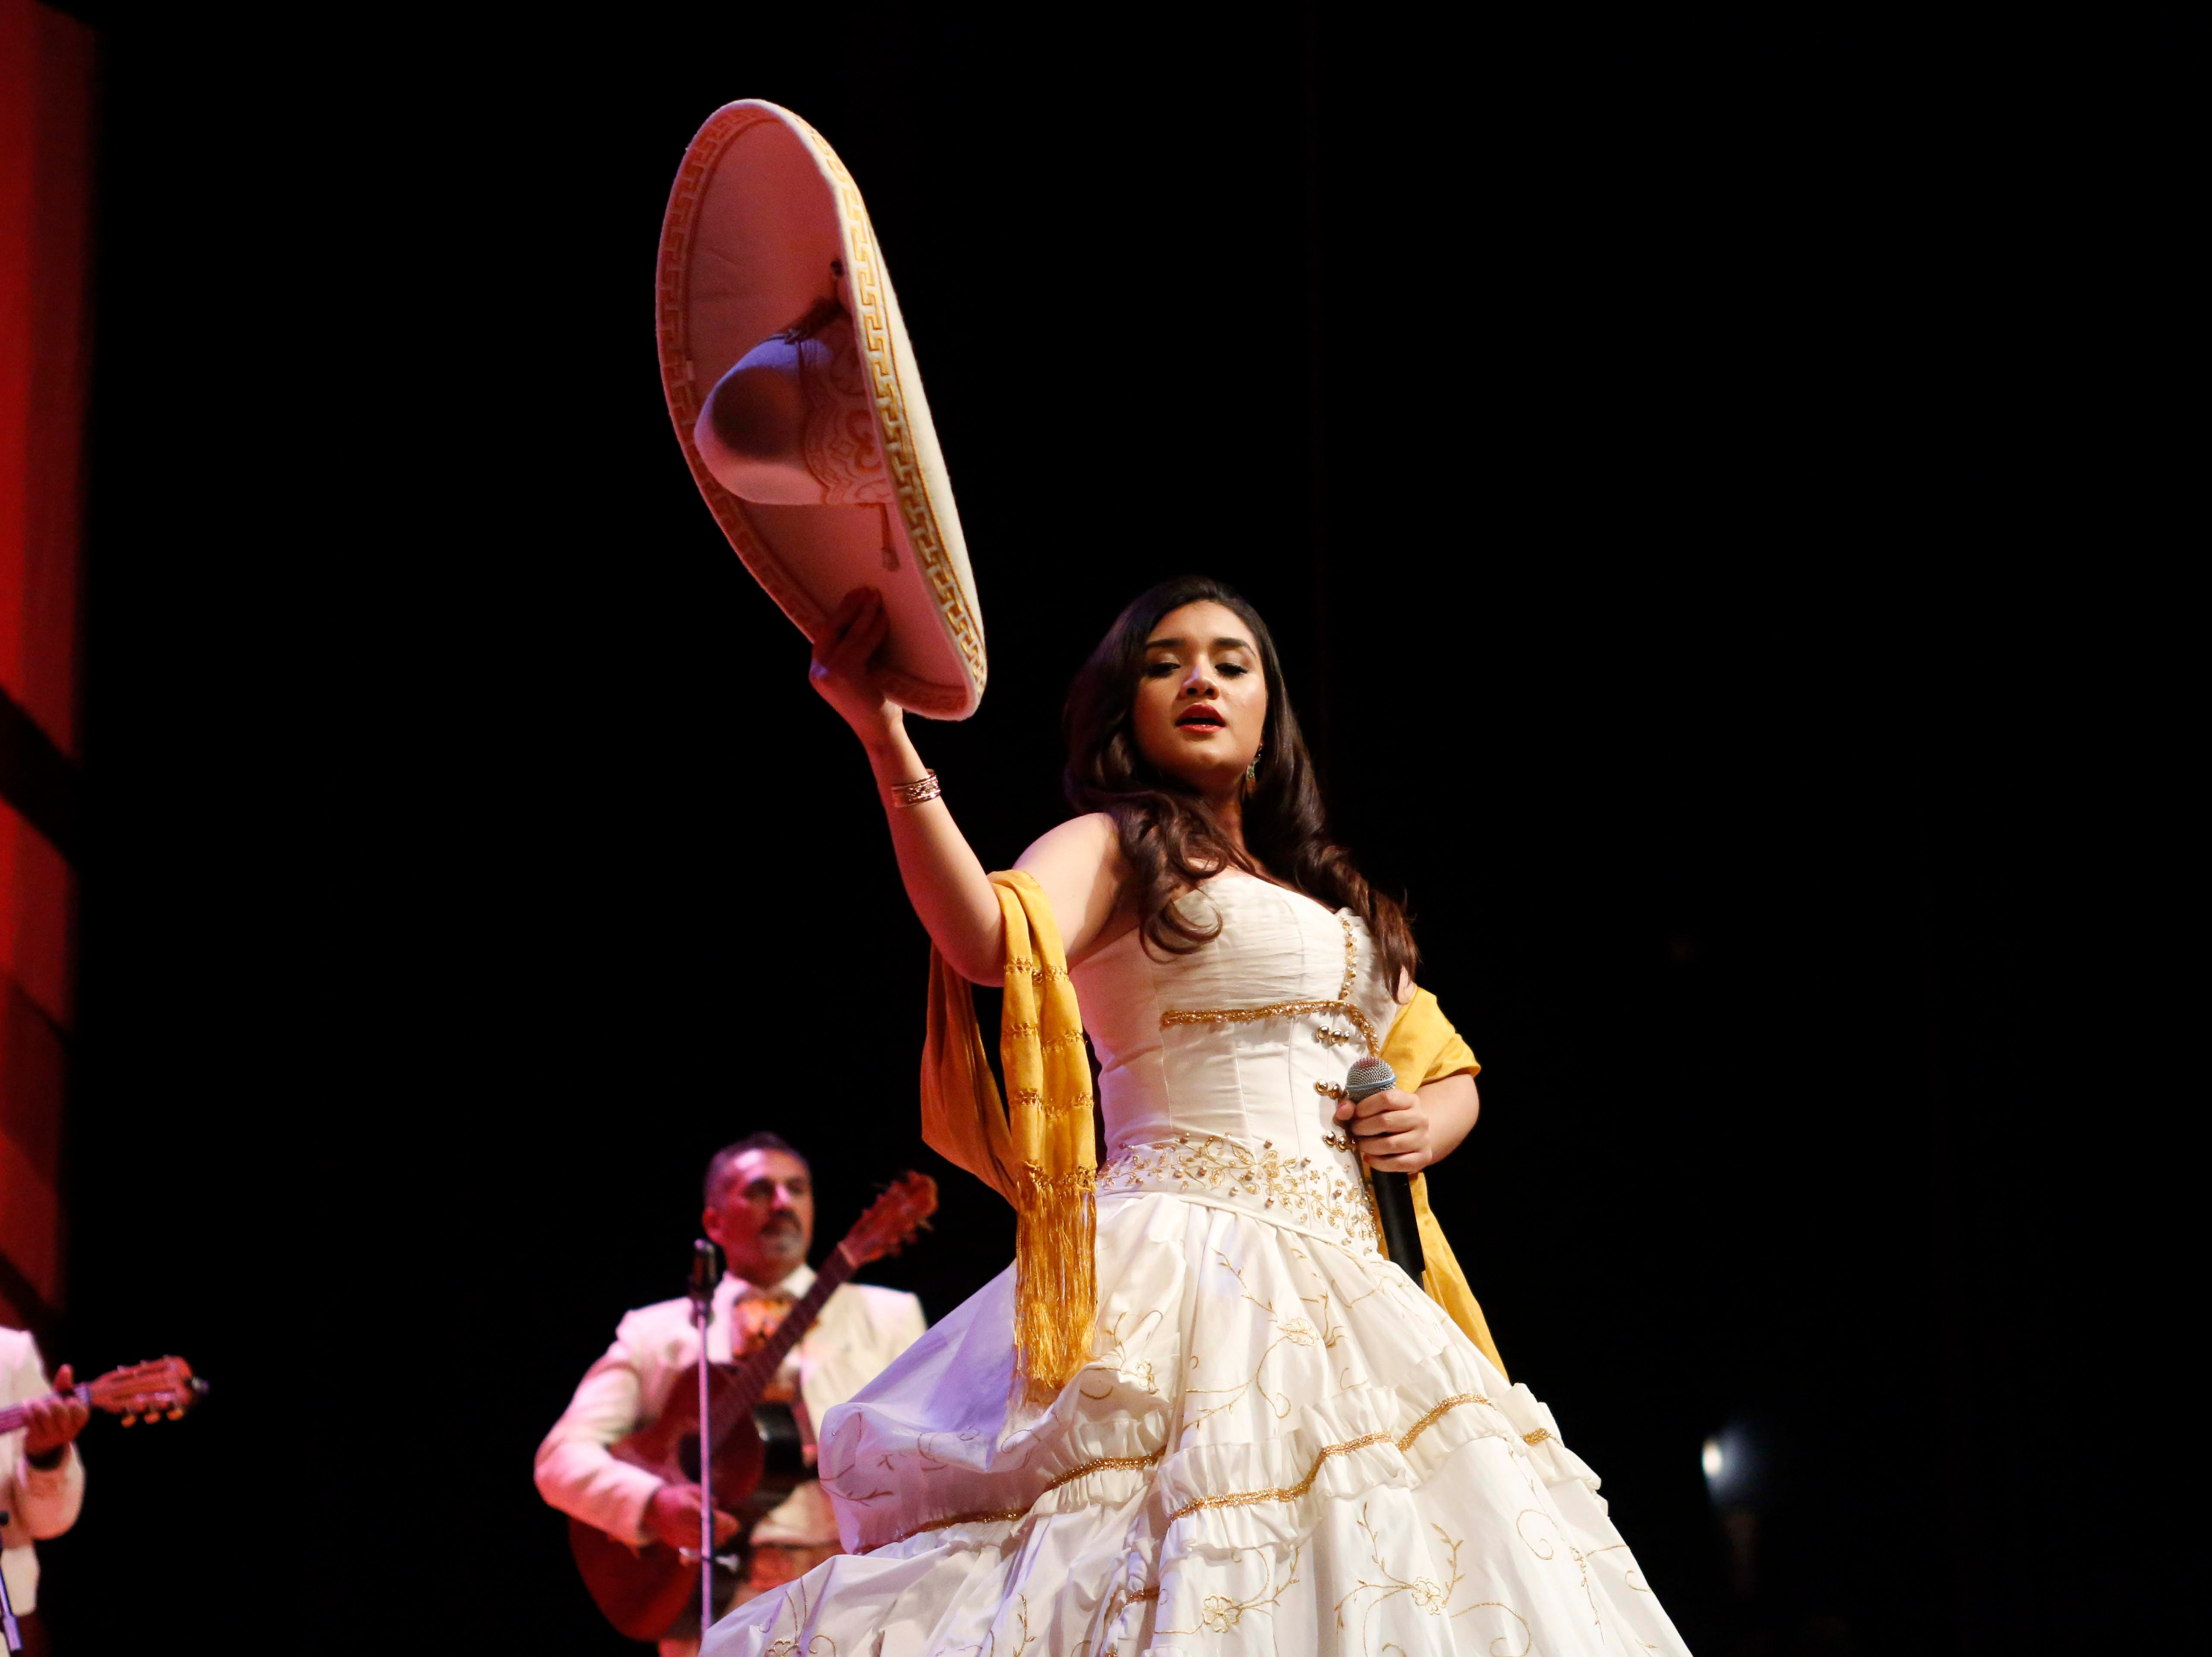 Gabriela Sepúlveda sings during the 12th annual Noche Bohemia at Sherwood Hall on Saturday, April 27, 2019 in Salinas, Calif.